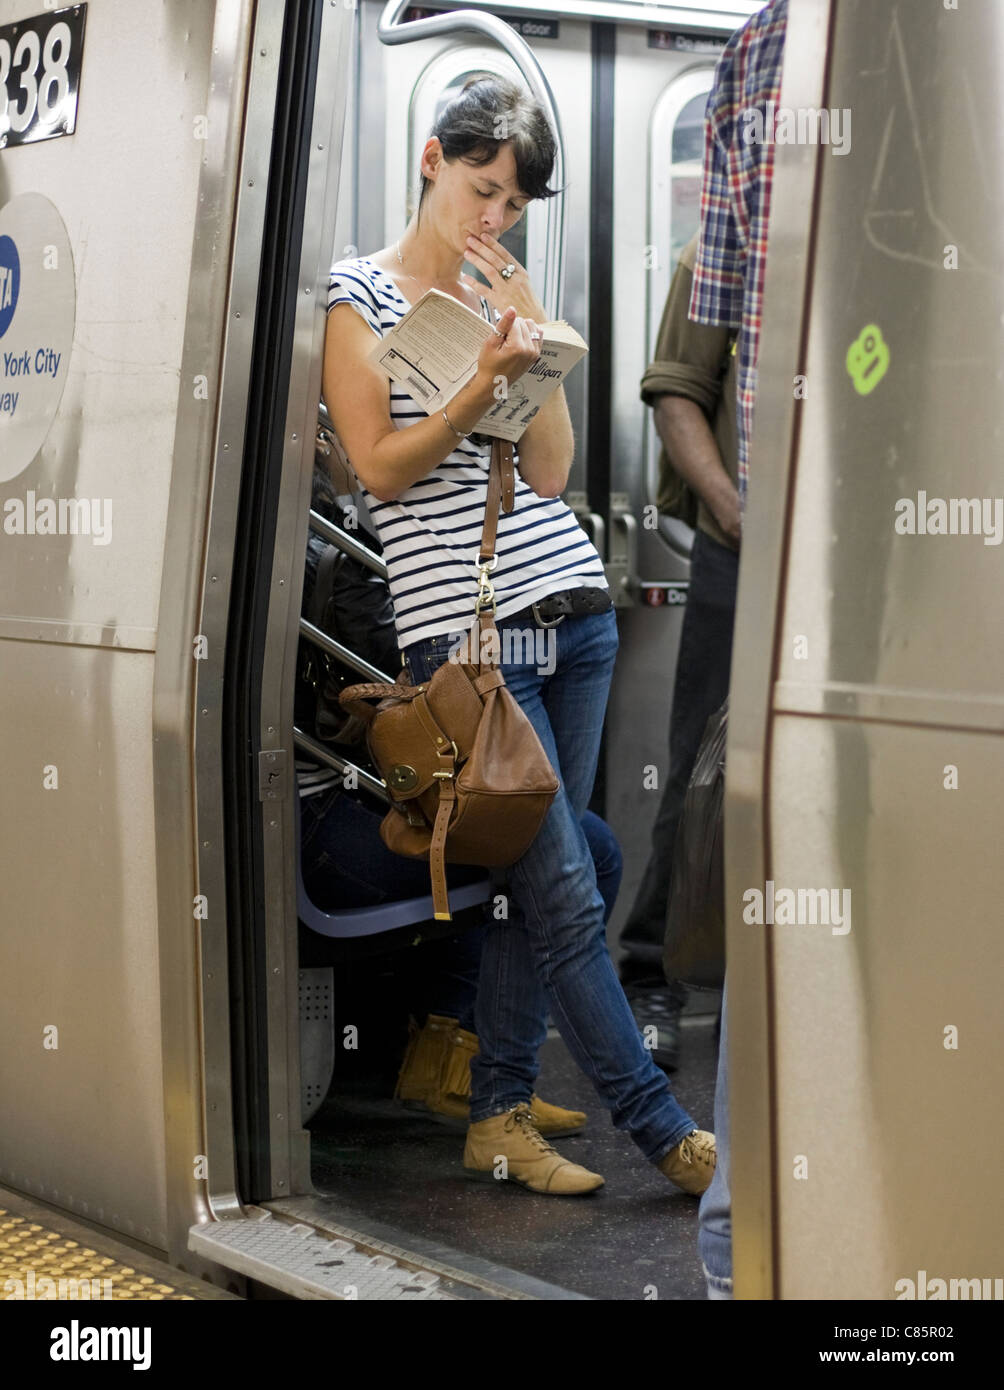 A woman is engrossed in her book while riding the subway in New York City. - Stock Image